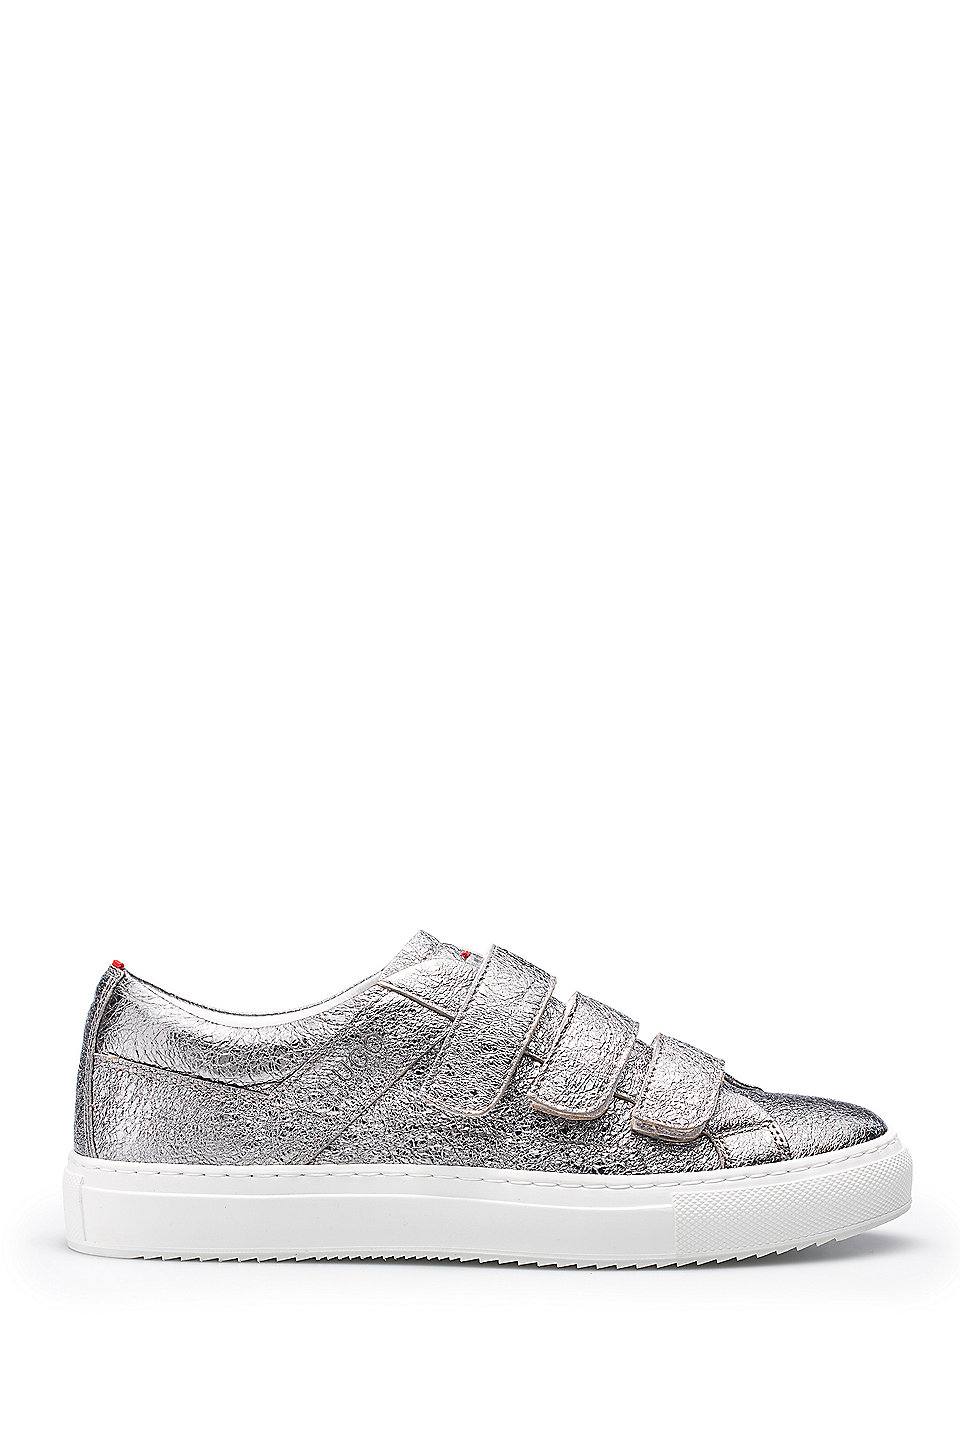 HUGO BOSS Hugo Boss Metallic Leather Sneakers Camden Strap L 6 Patterned Buy Cheap For Sale Sale Wholesale Price Perfect Sale Online Cheap Visa Payment lMY5z